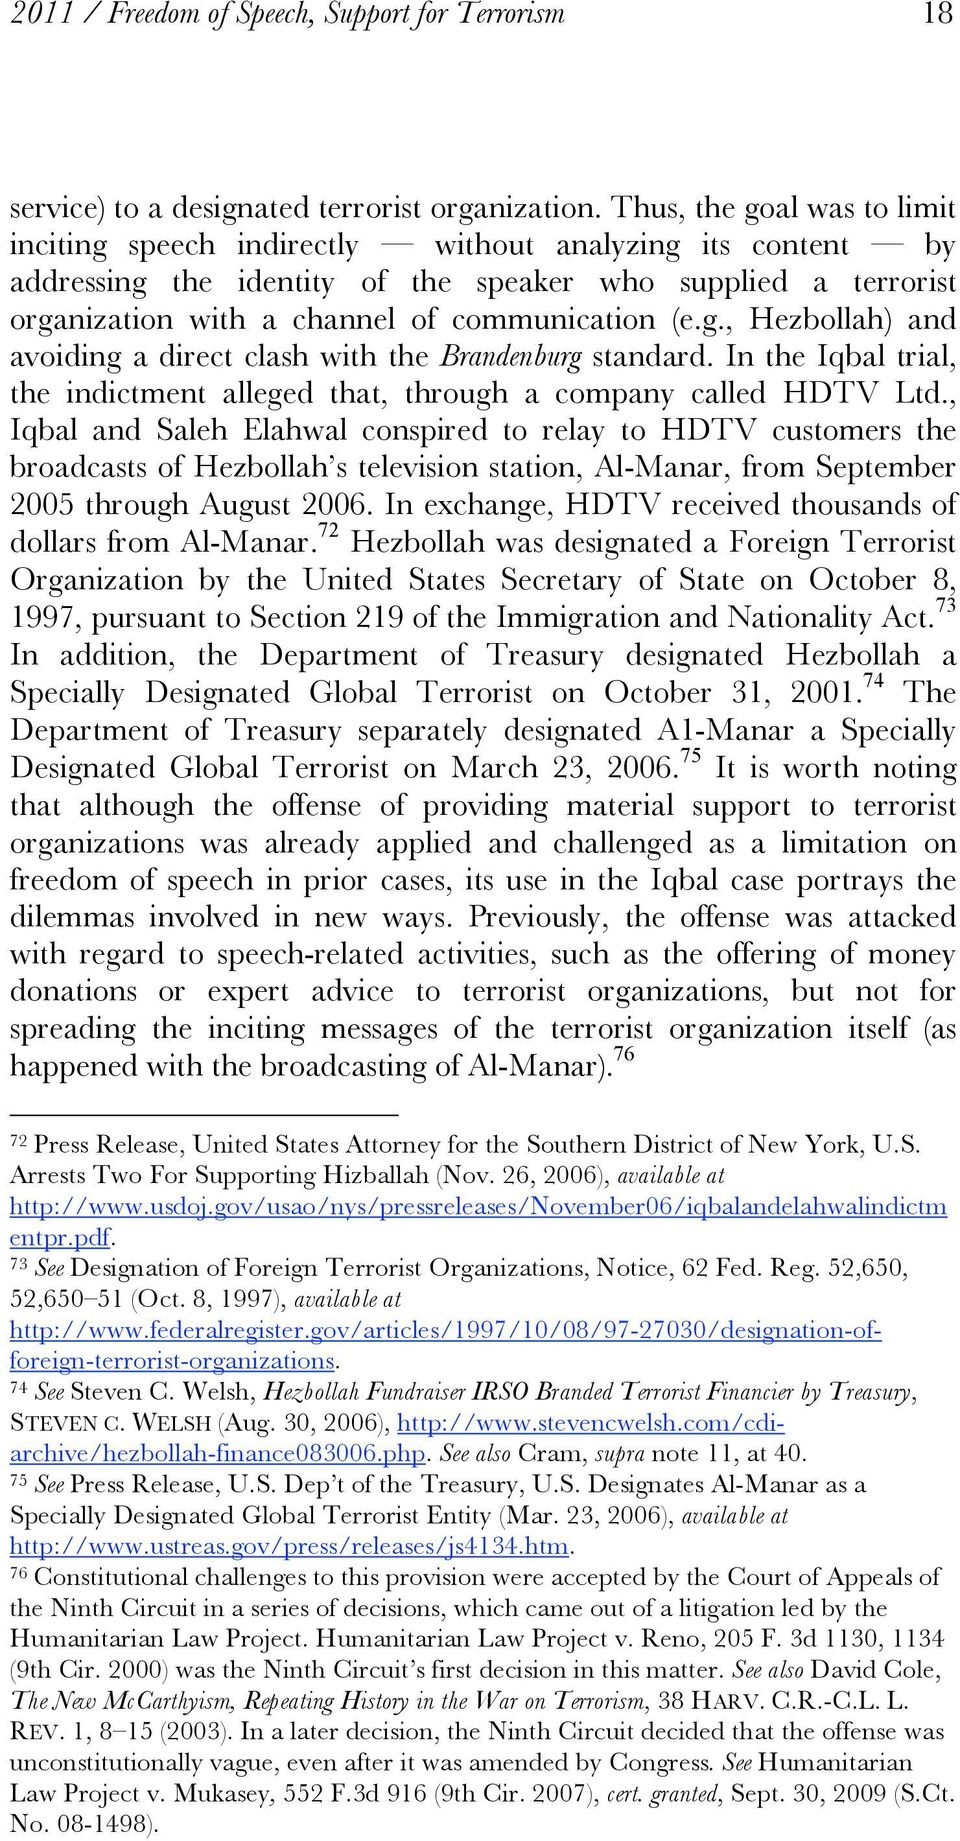 g., Hezbollah) and avoiding a direct clash with the Brandenburg standard. In the Iqbal trial, the indictment alleged that, through a company called HDTV Ltd.